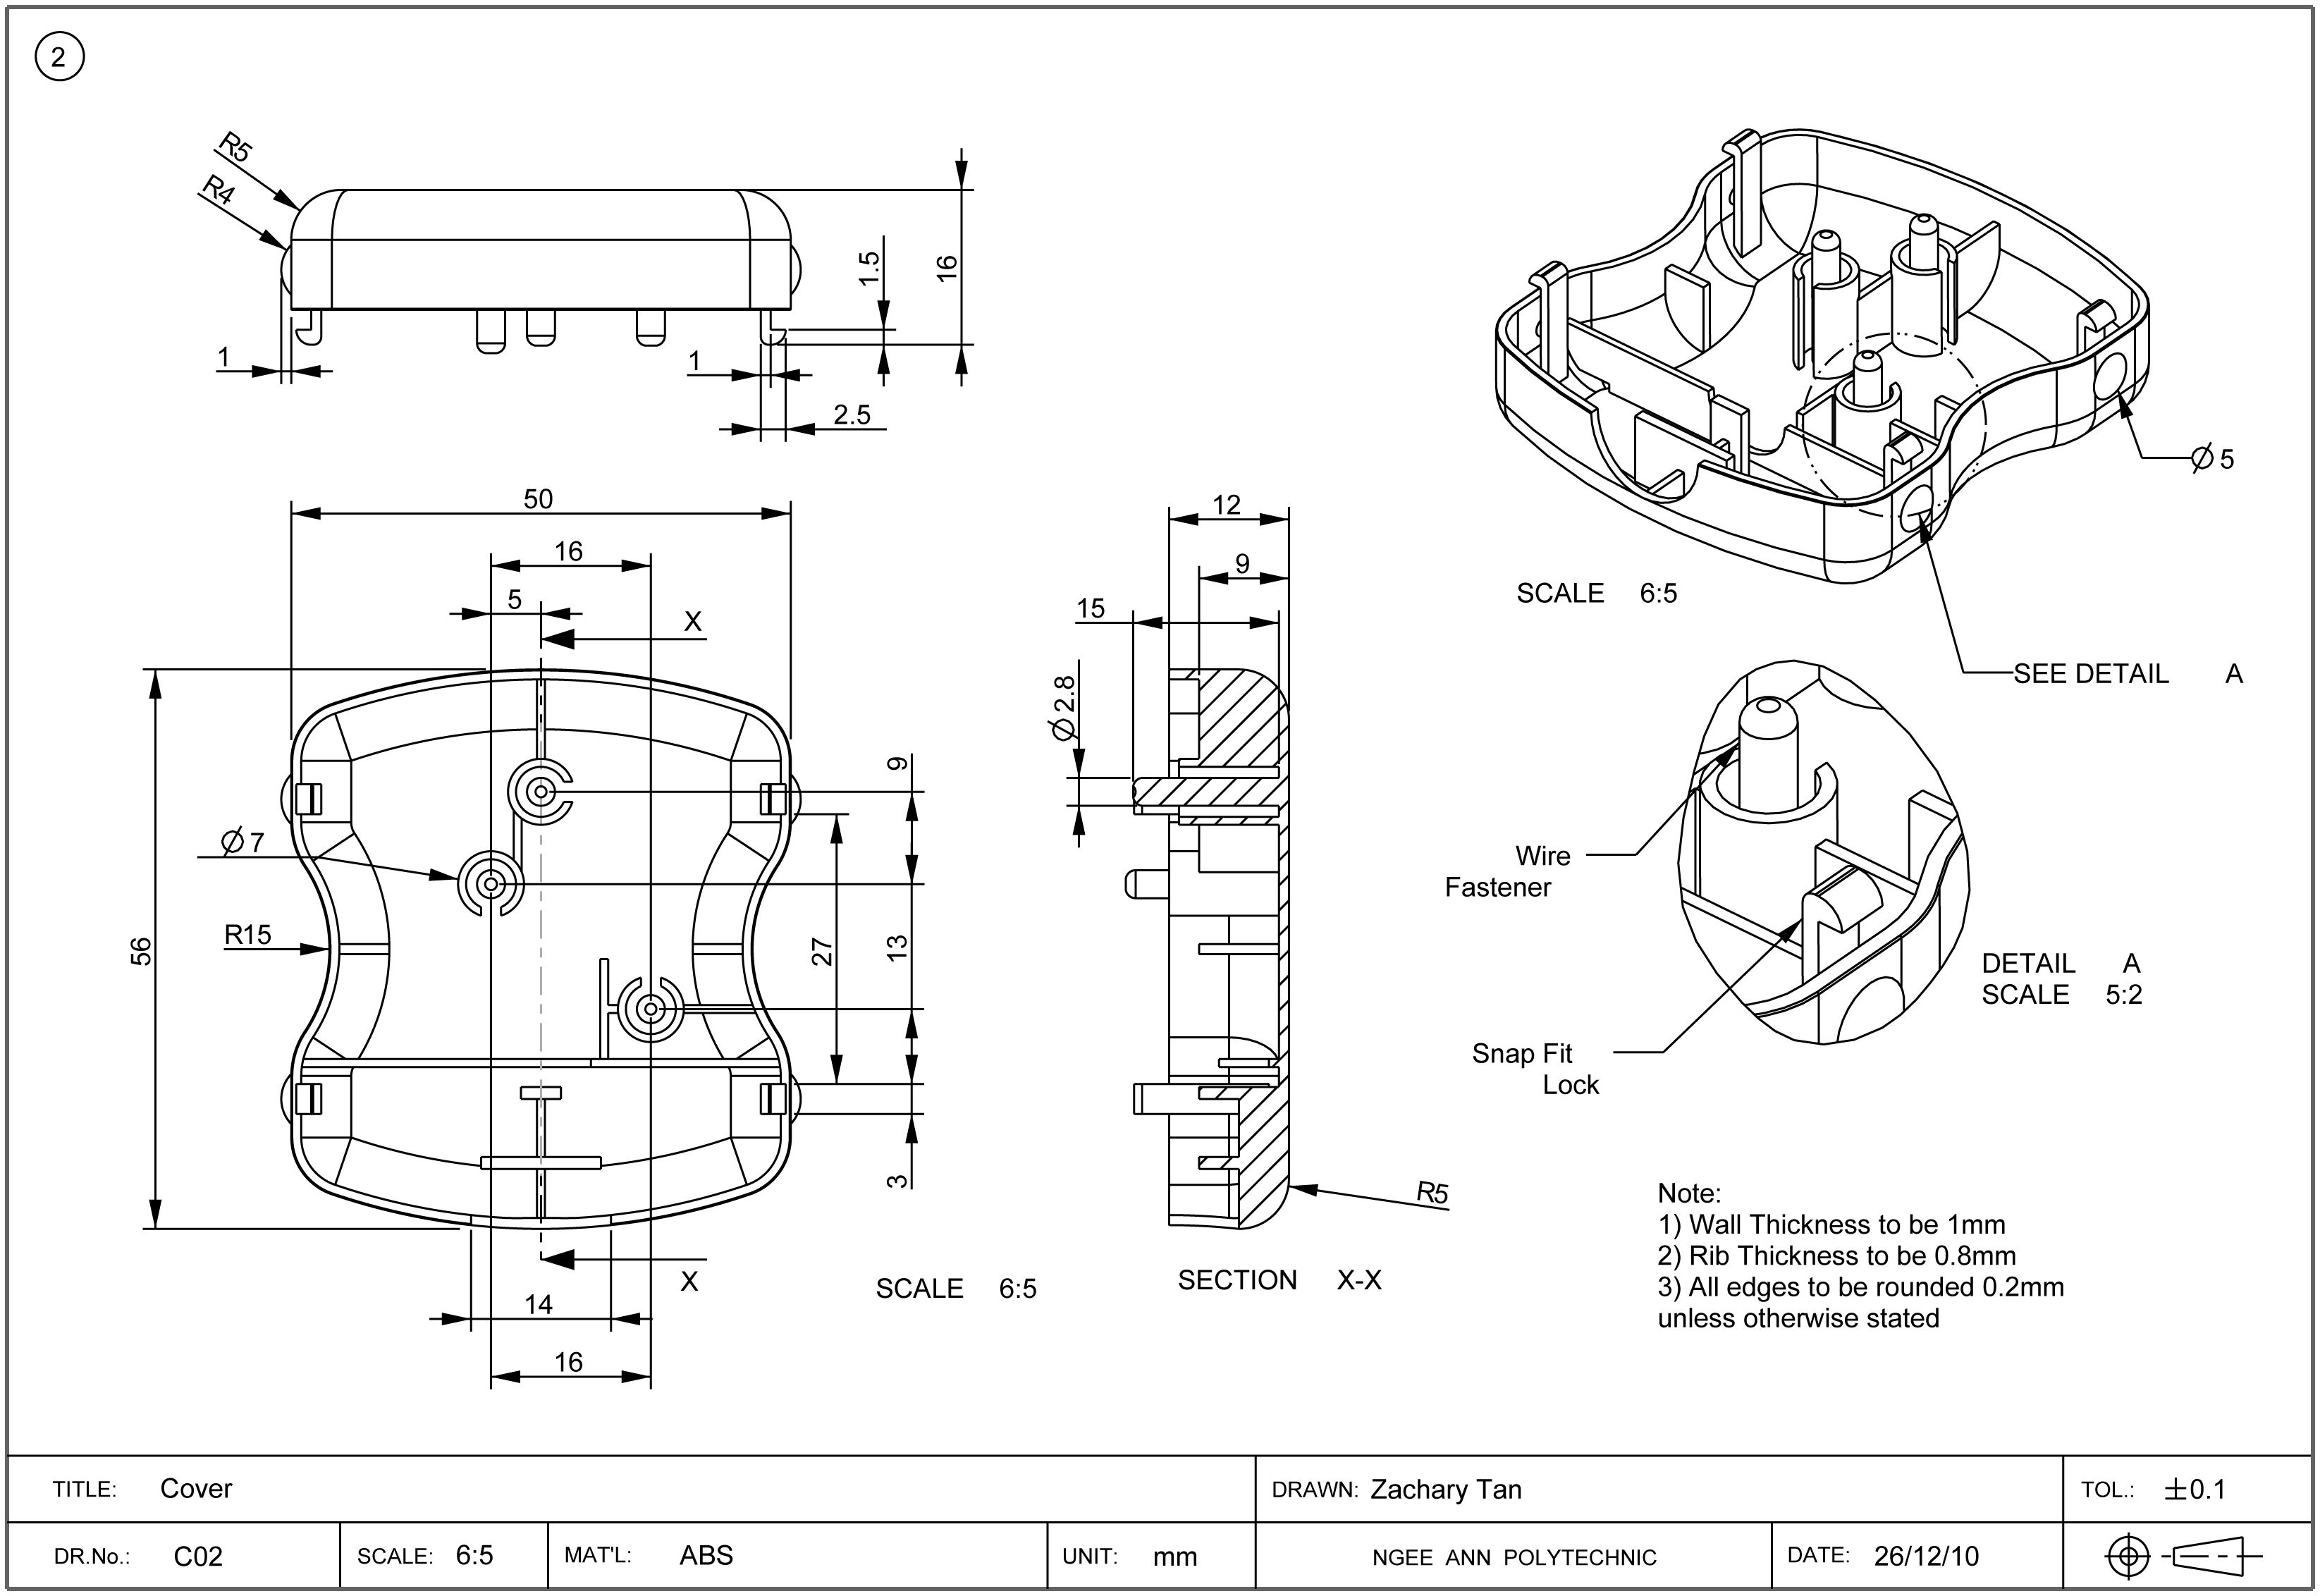 Manufacturing Engineer Technical Drawing